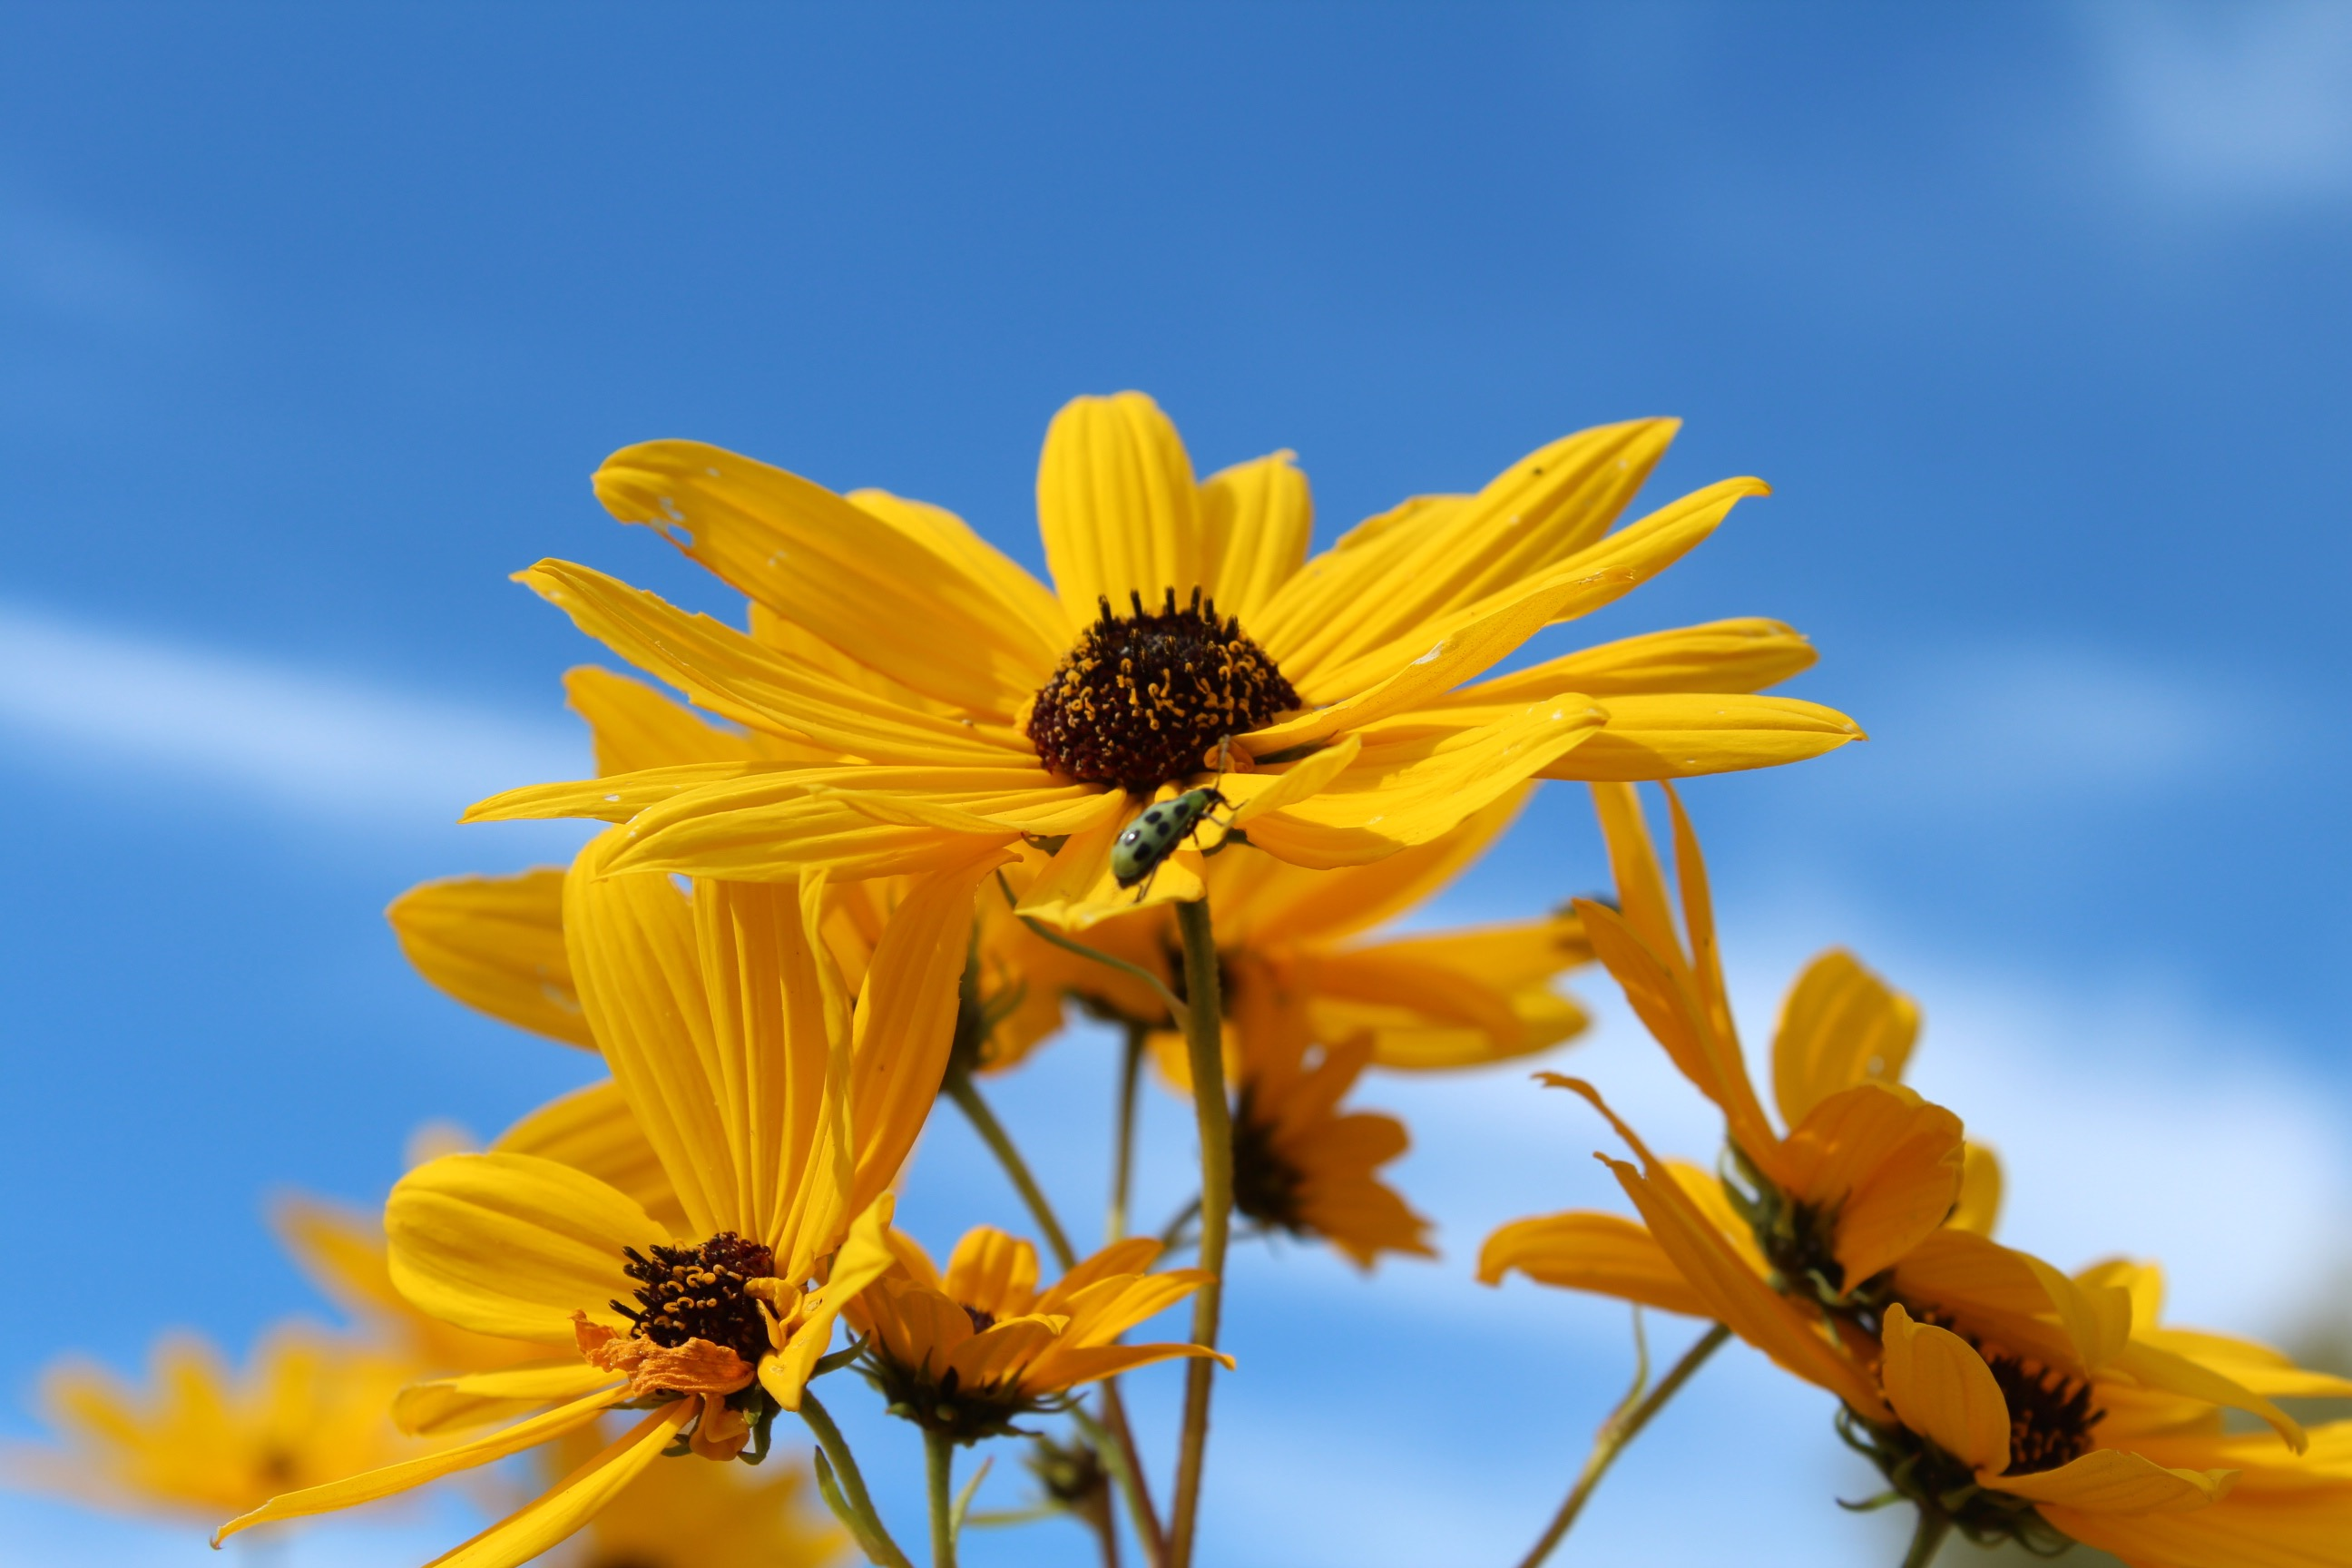 Image shows bright yellow sunflowers against a blue sky